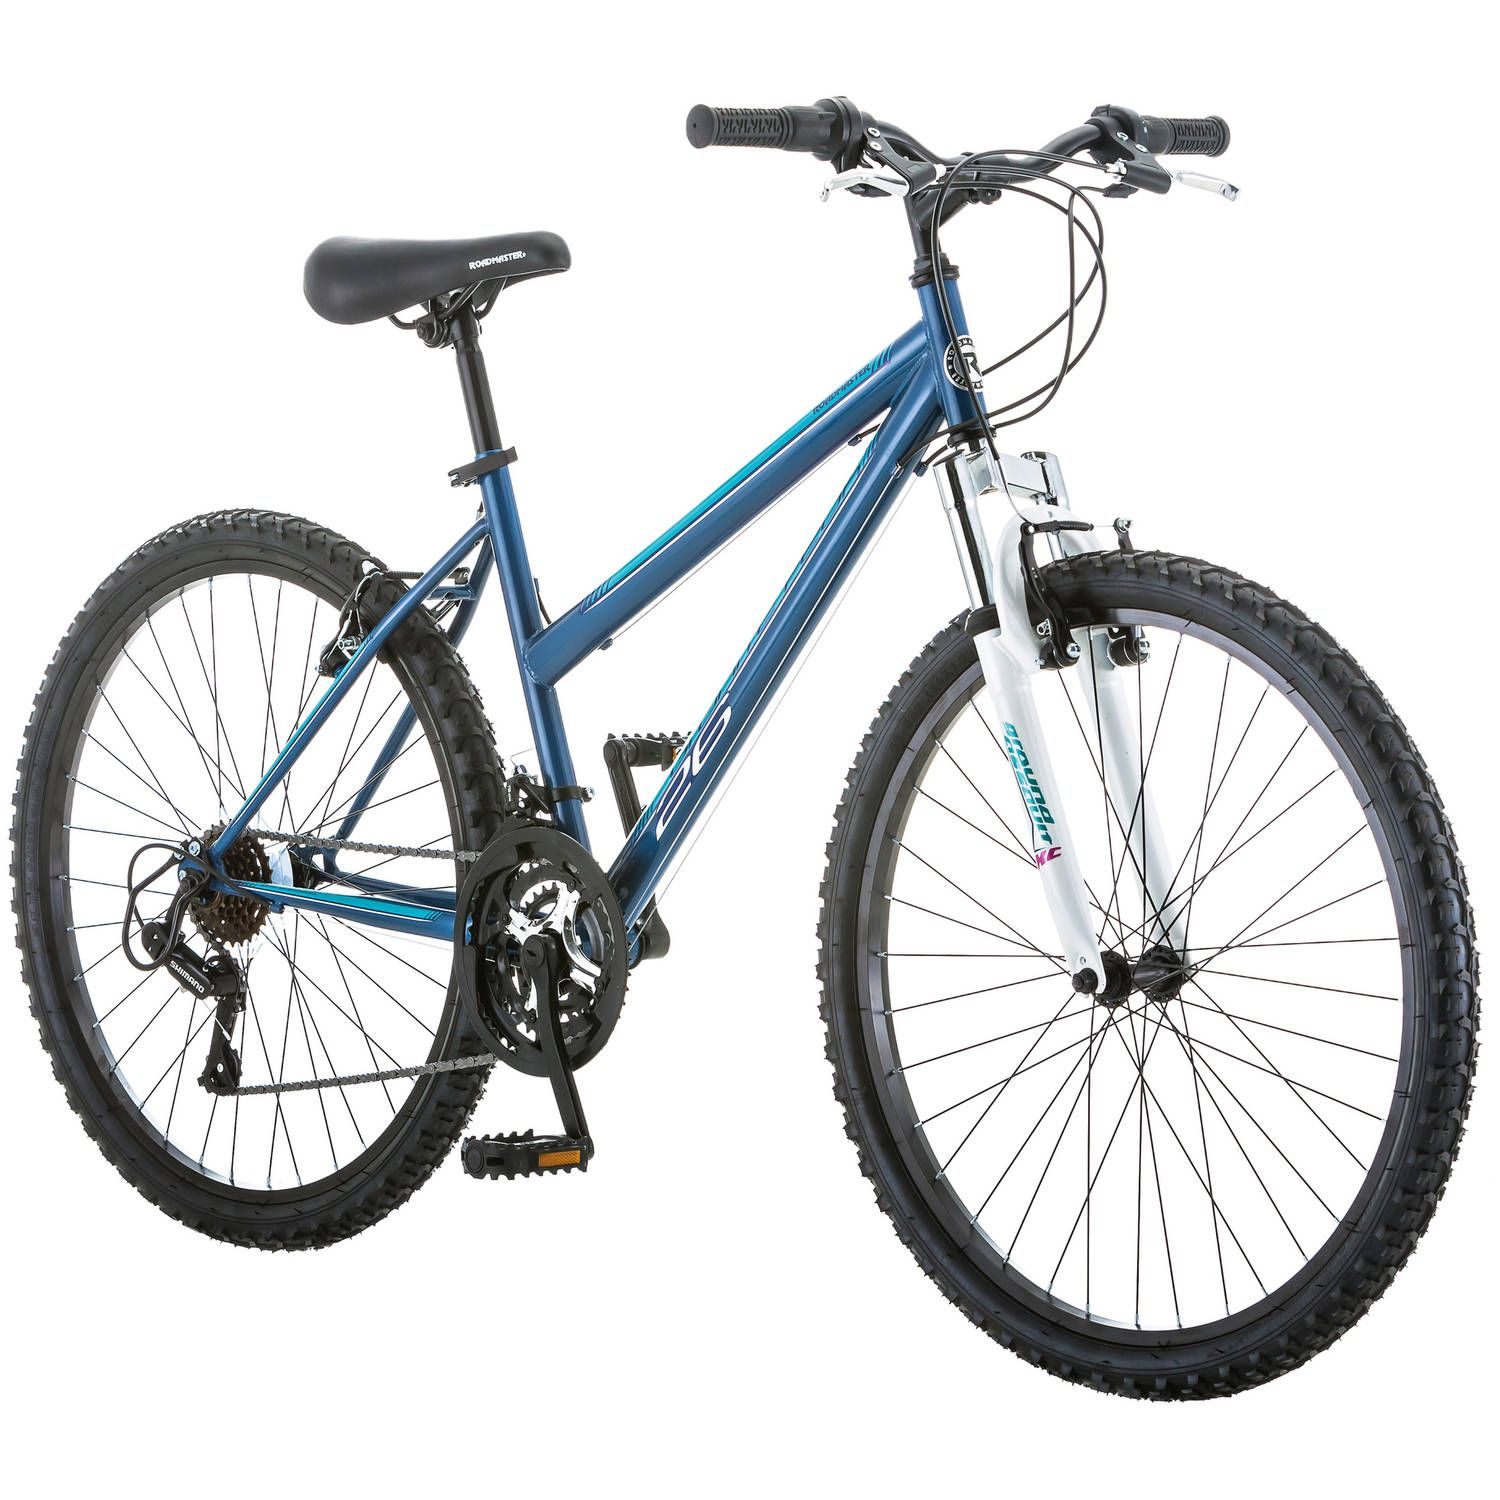 Looking For 26 Granite Peak Women S Mountain Bike Reviews Here